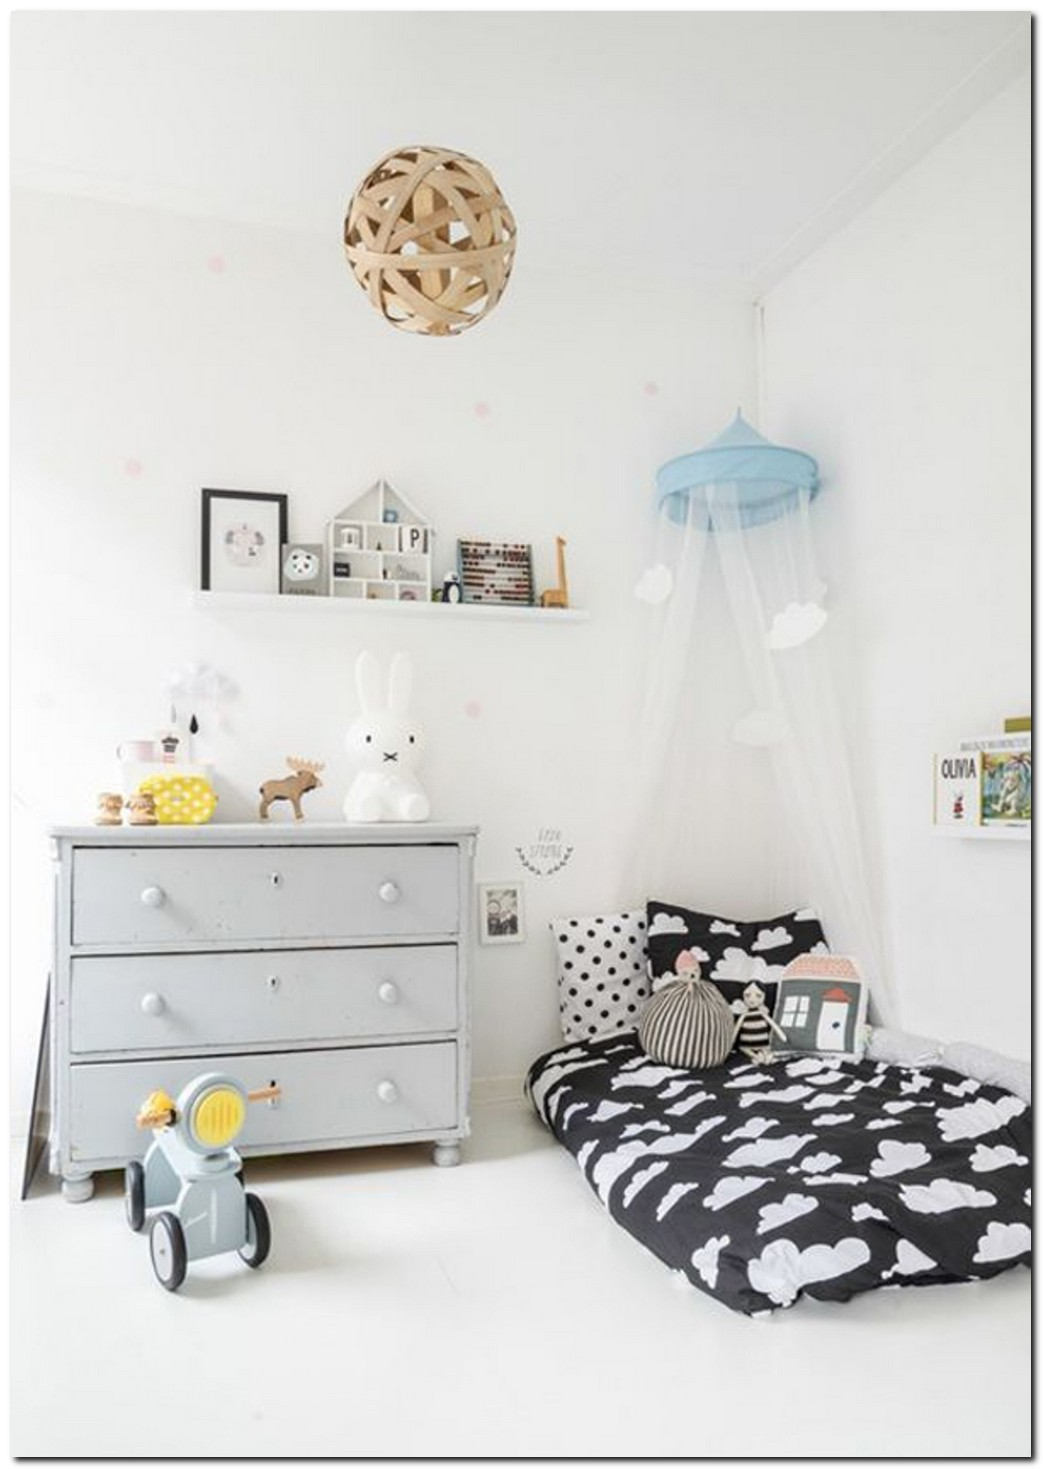 How to successfully choose bunk beds for kids 27